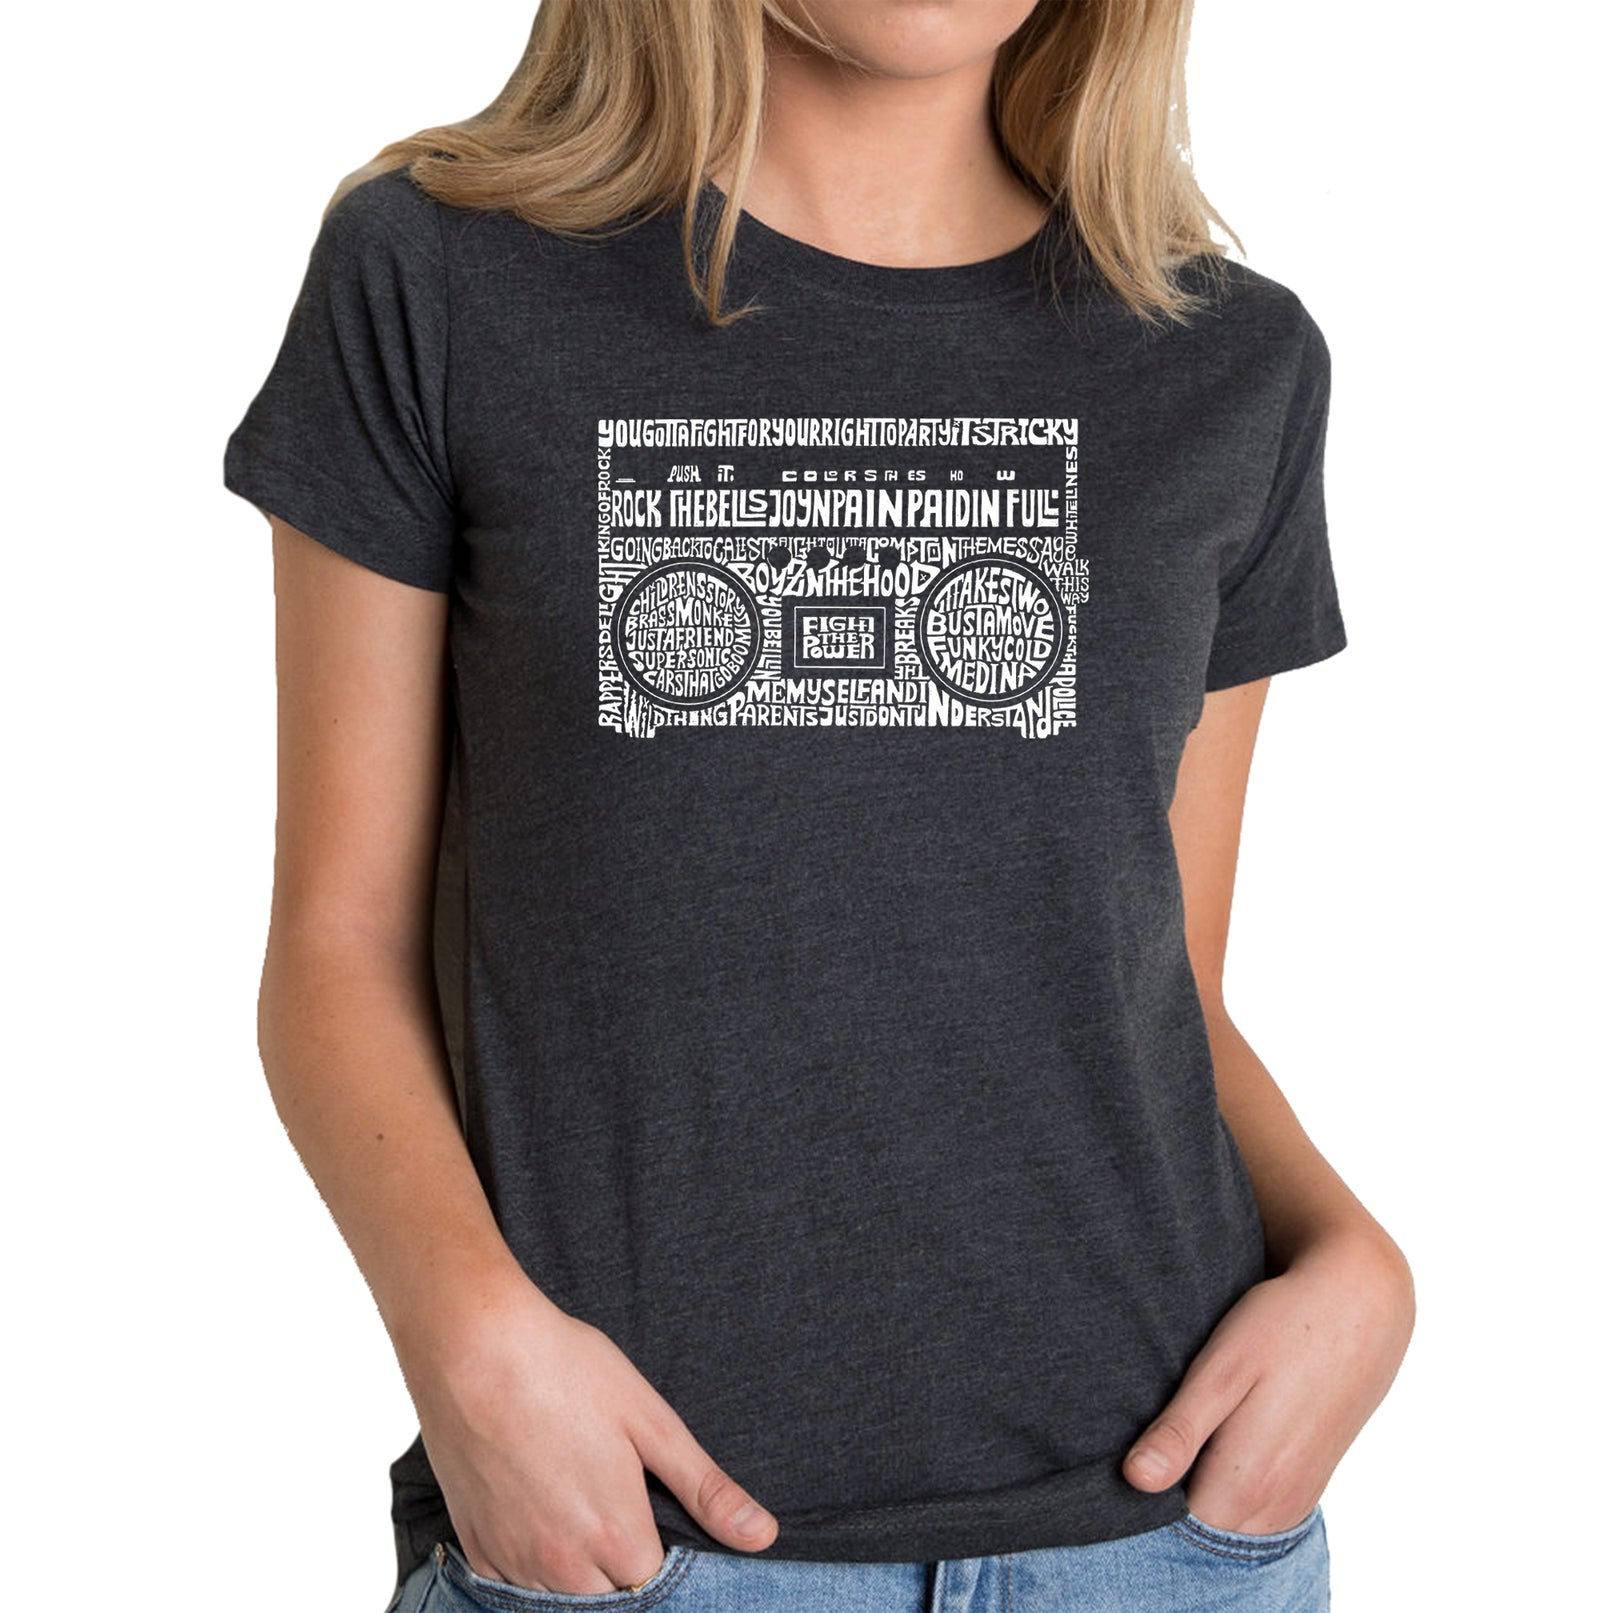 Women's Premium Blend Word Art T-shirt - Greatest Rap Hits of The 1980's